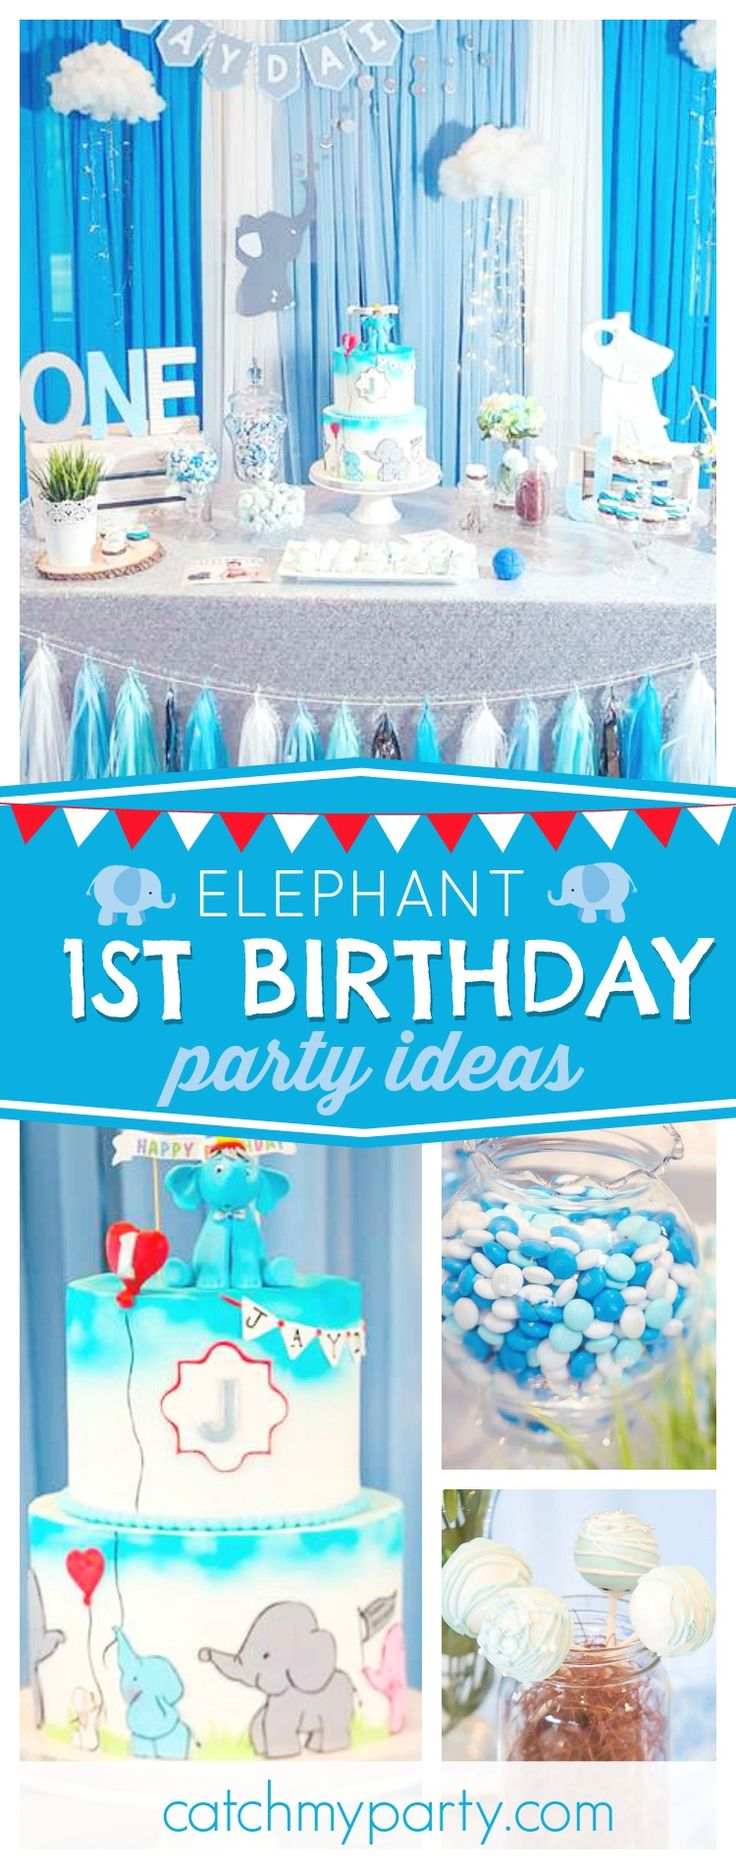 Check out this awesome Elephant inspired 1st Birthday party! The birthday cake is adorable!! See more party ideas and share yours at CatchMyParty.com